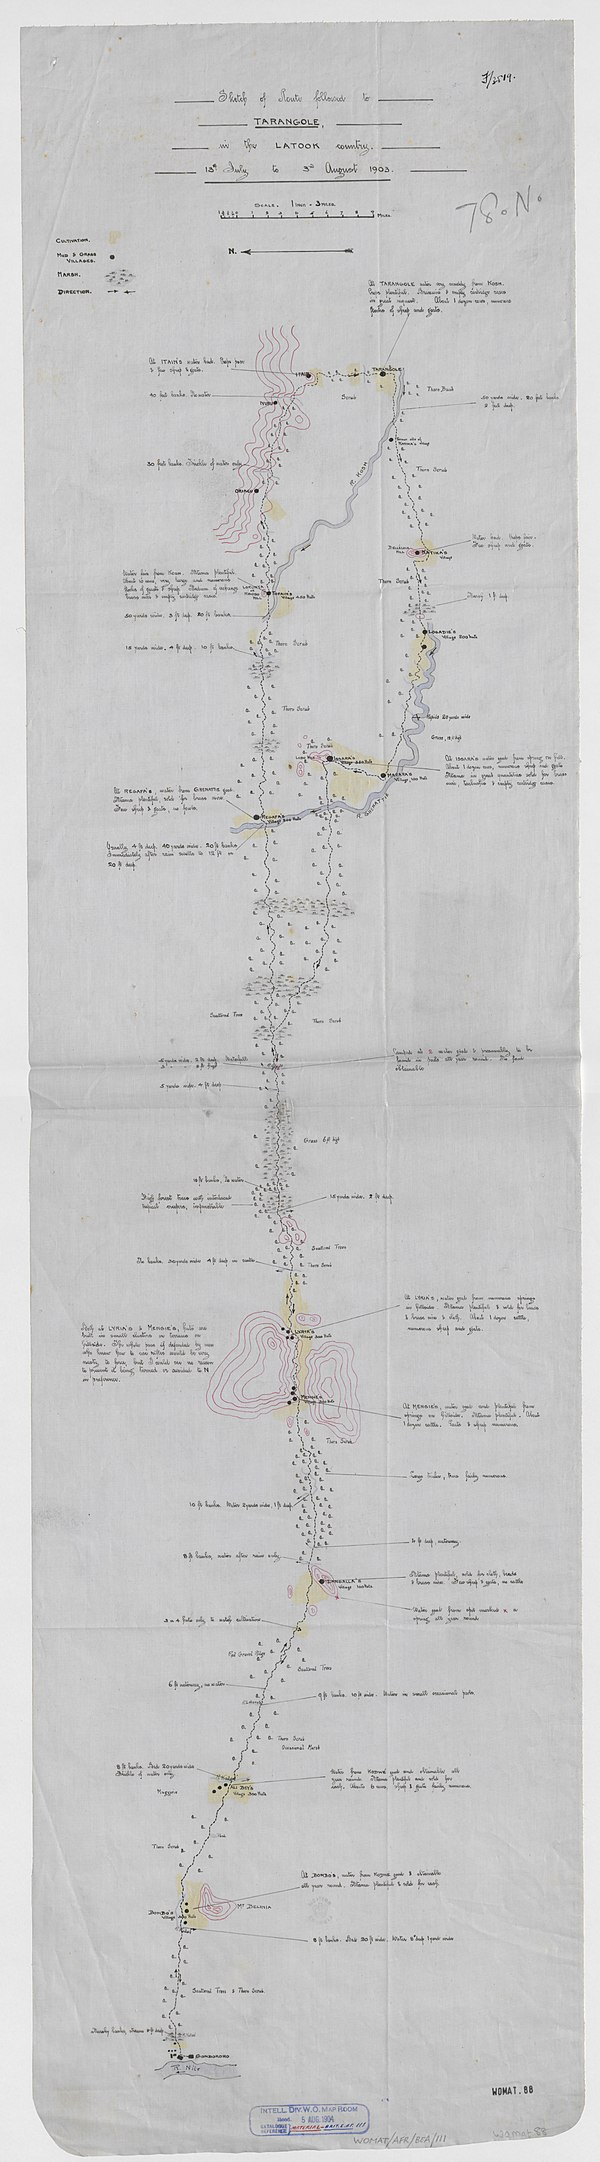 600px sketch of route followed to tarangole%2c in the latook country. %28womat afr bea 111%29